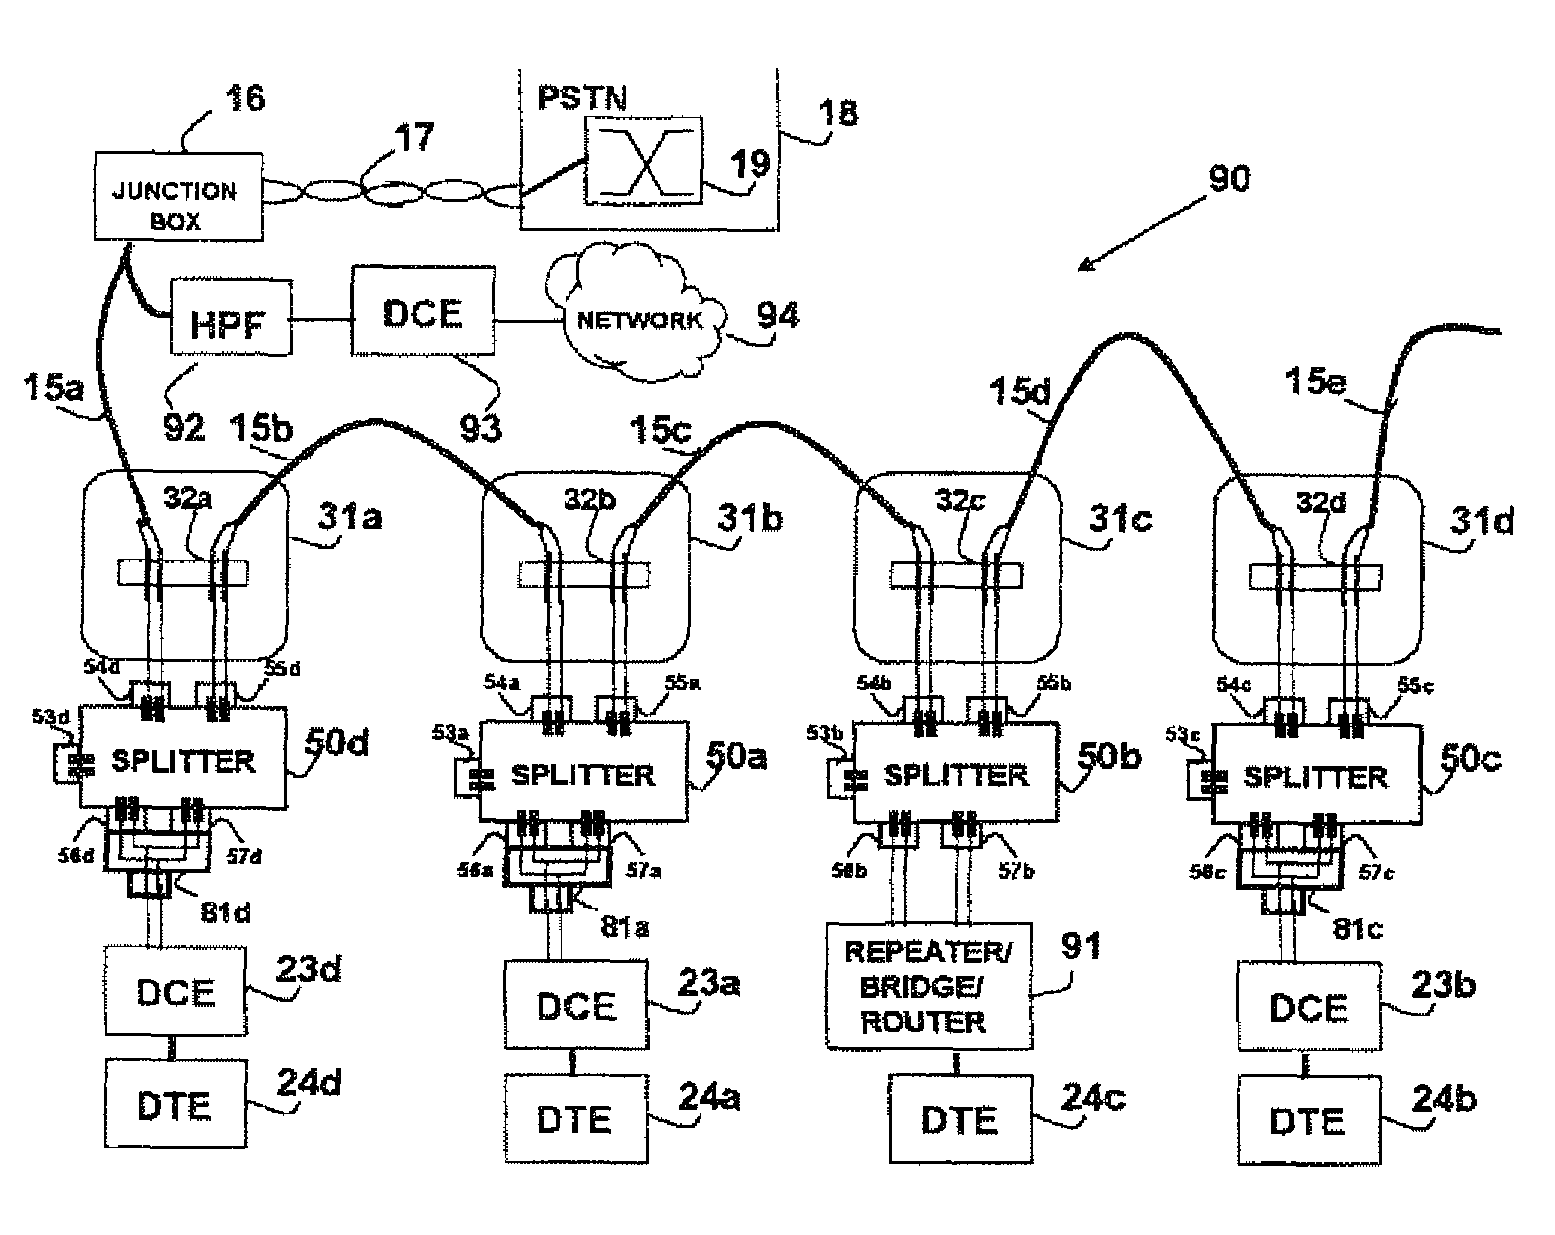 US08363797 20130129 D00000 patent us8363797 telephone outlet for implementing a local area,Wiring Phone Lines